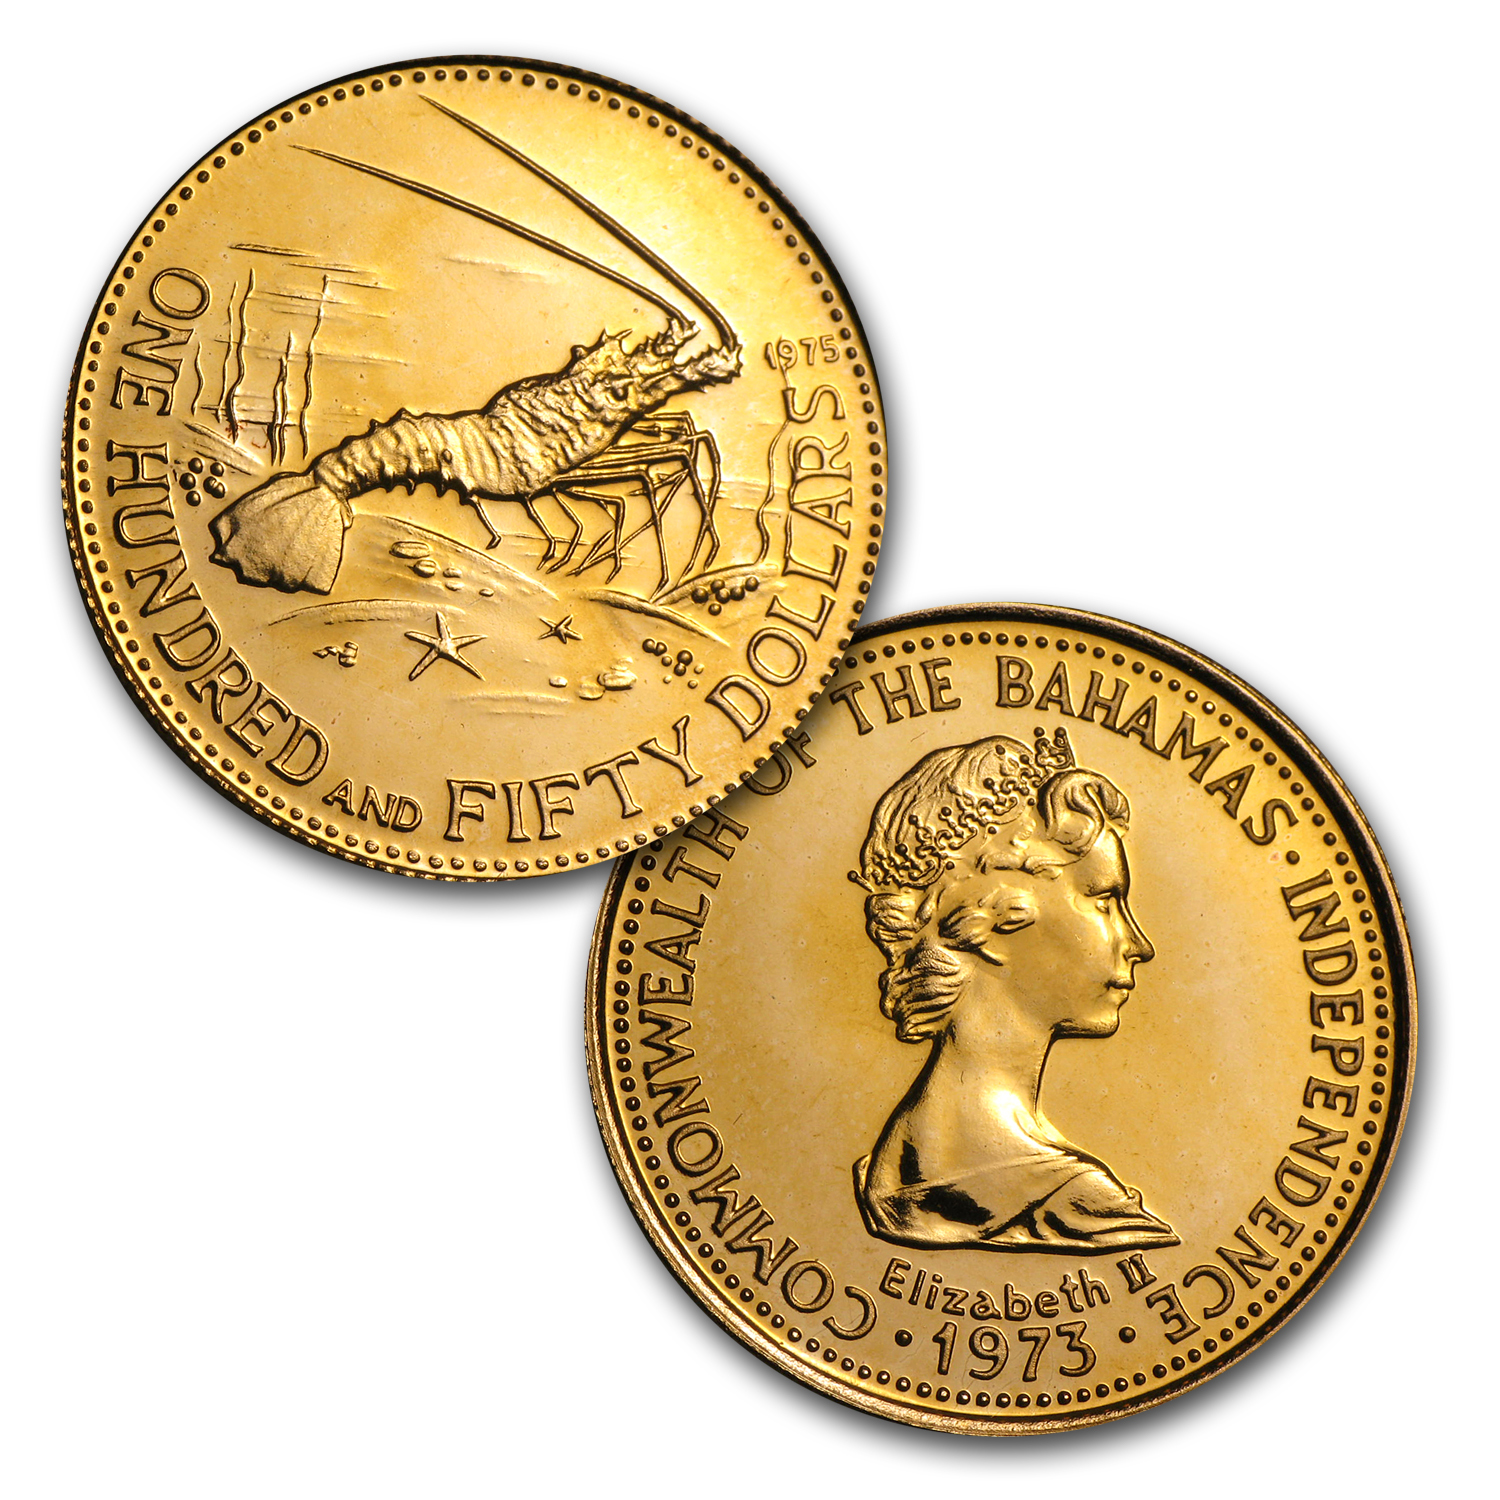 Bahamas 1975 4 Piece Gold Set BU AGW 0.8048